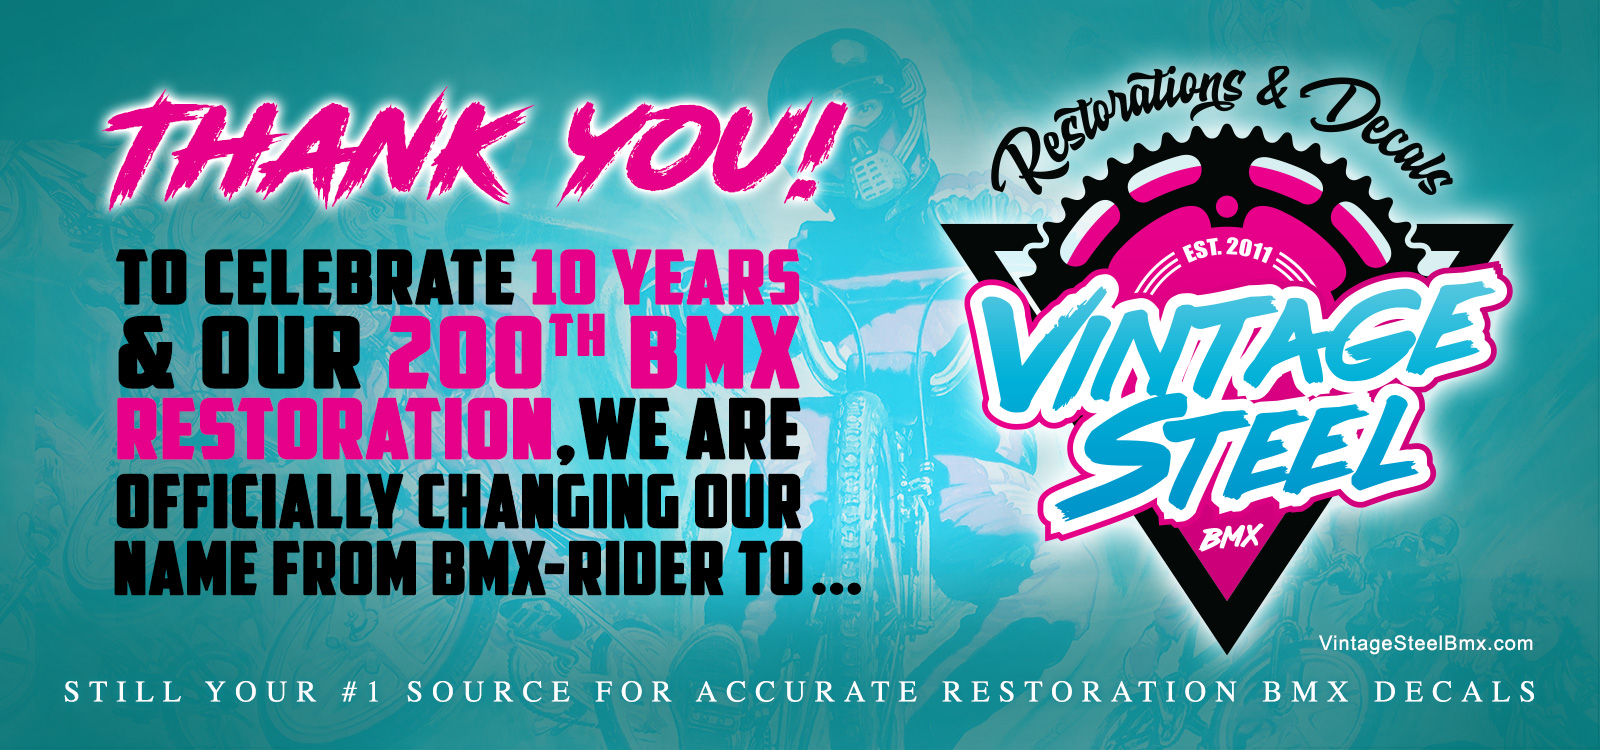 Our 10 Year Anniversary, 200th Vintage BMX Restoration & New Company Name!